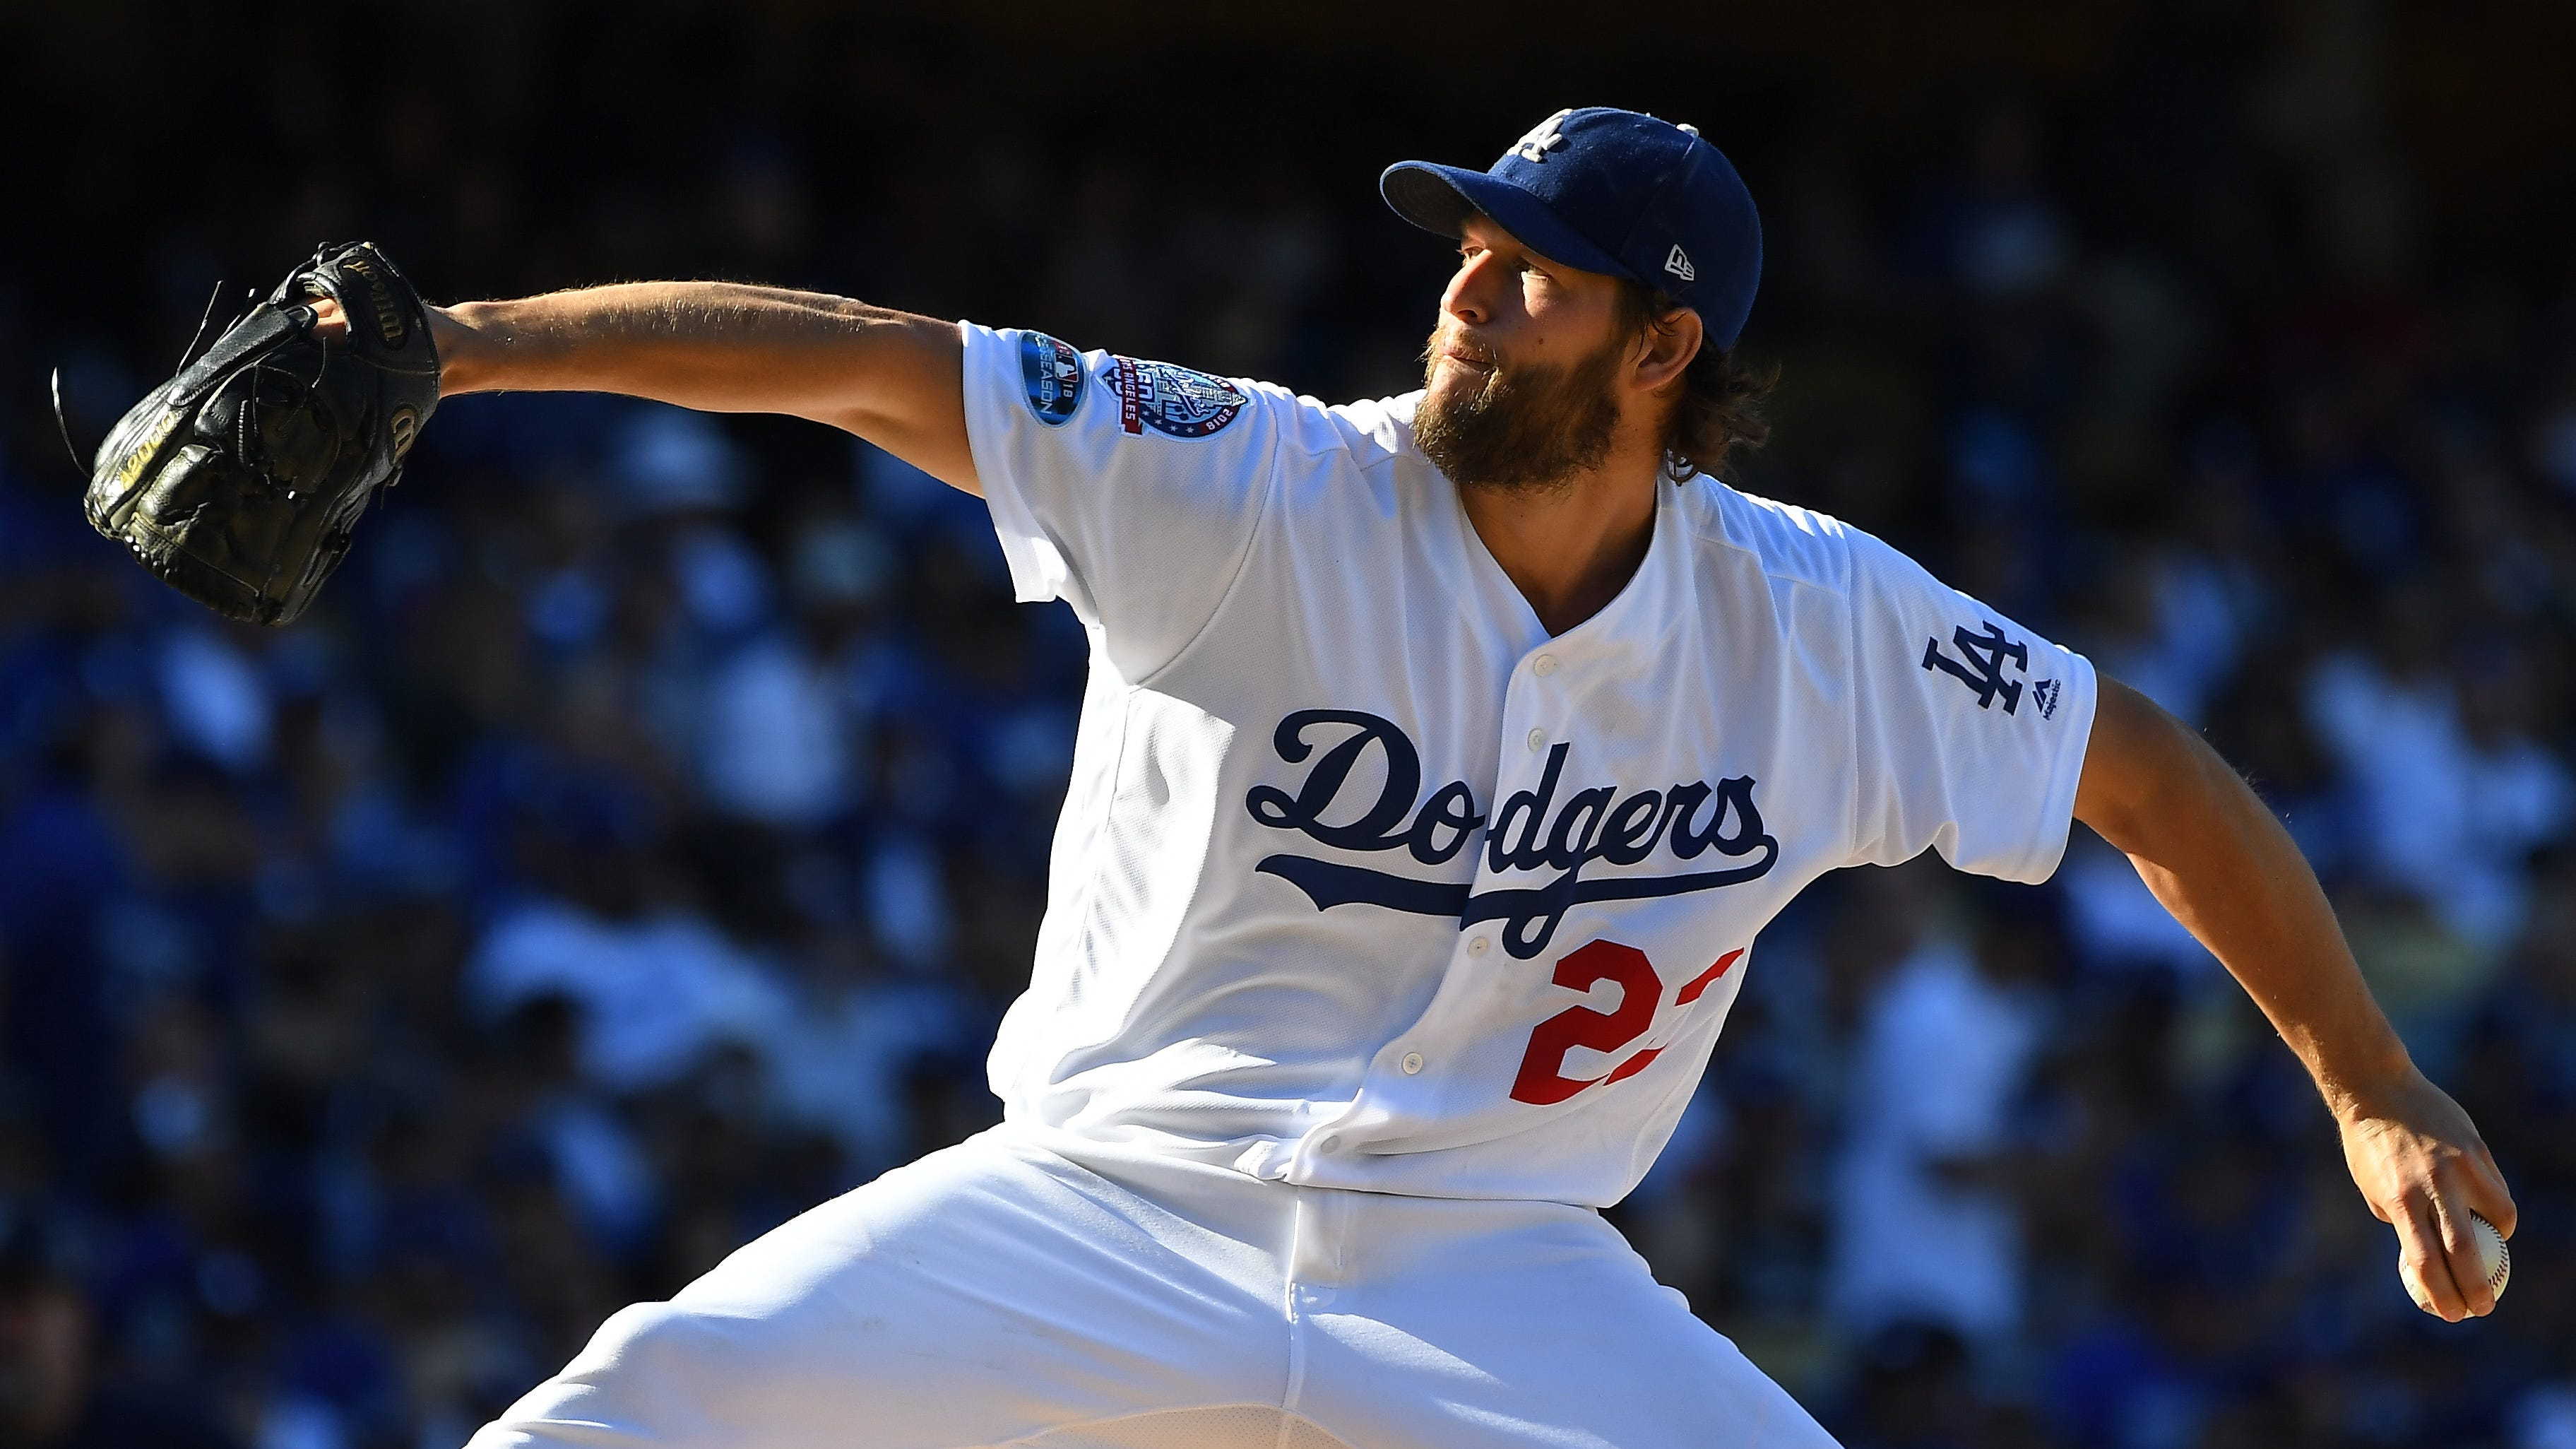 Clayton Kershaw dominates as Dodgers win NLCS Game 5, move to brink of World Series